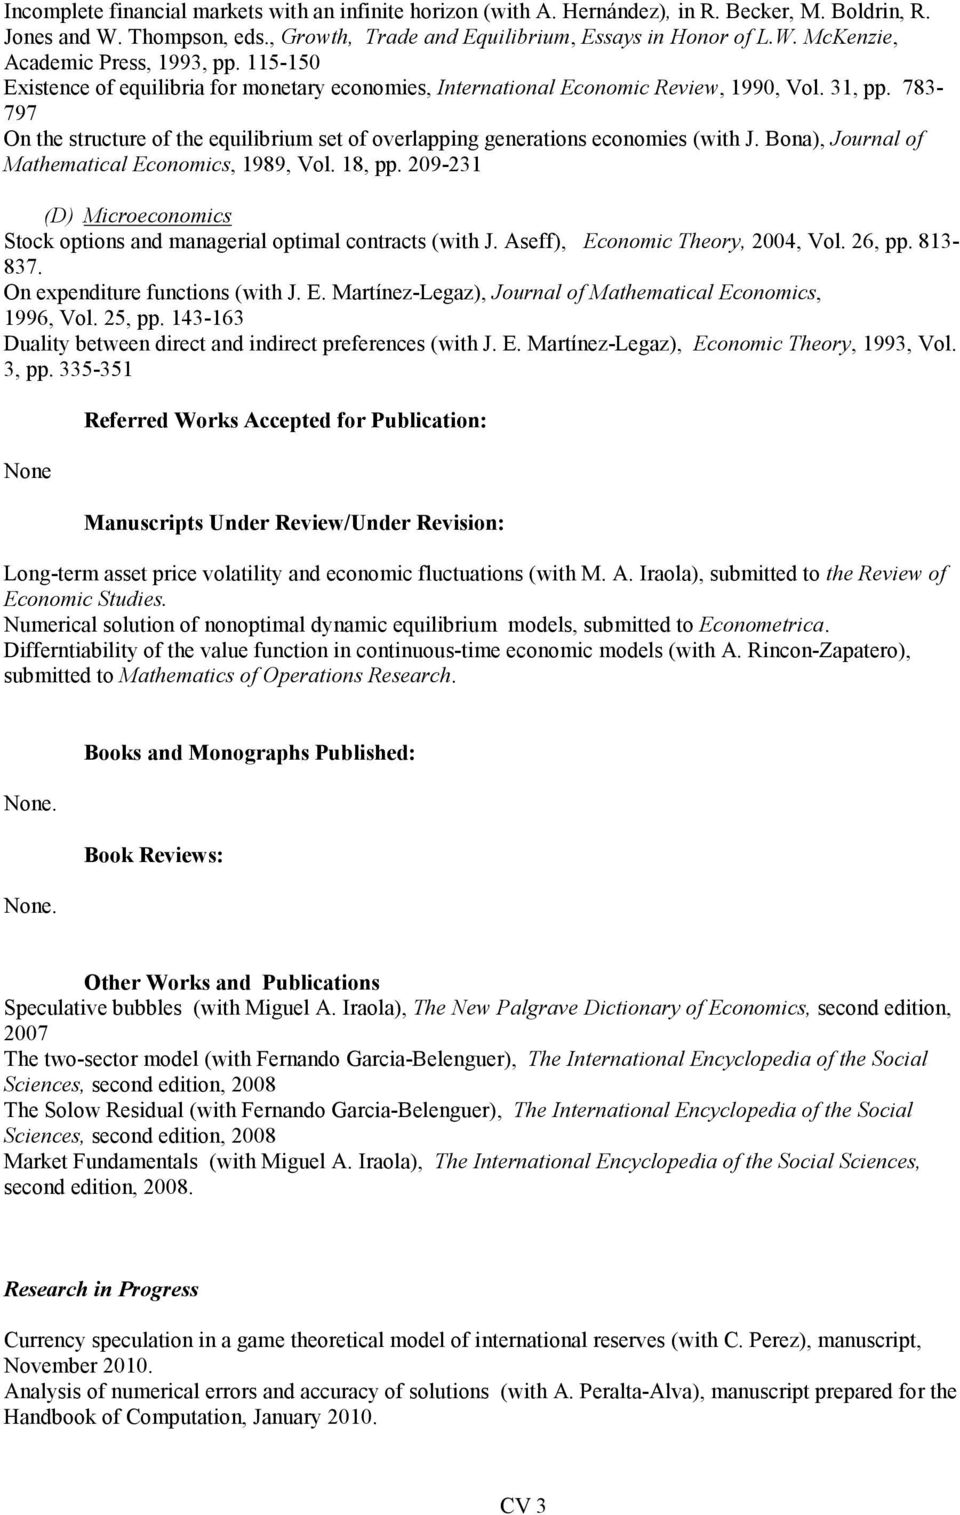 Bona), Journal of Mathematical Economics, 1989, Vol. 18, pp. 209-231 (D) Microeconomics Stock options and managerial optimal contracts (with J. Aseff), Economic Theory, 2004, Vol. 26, pp. 813-837.